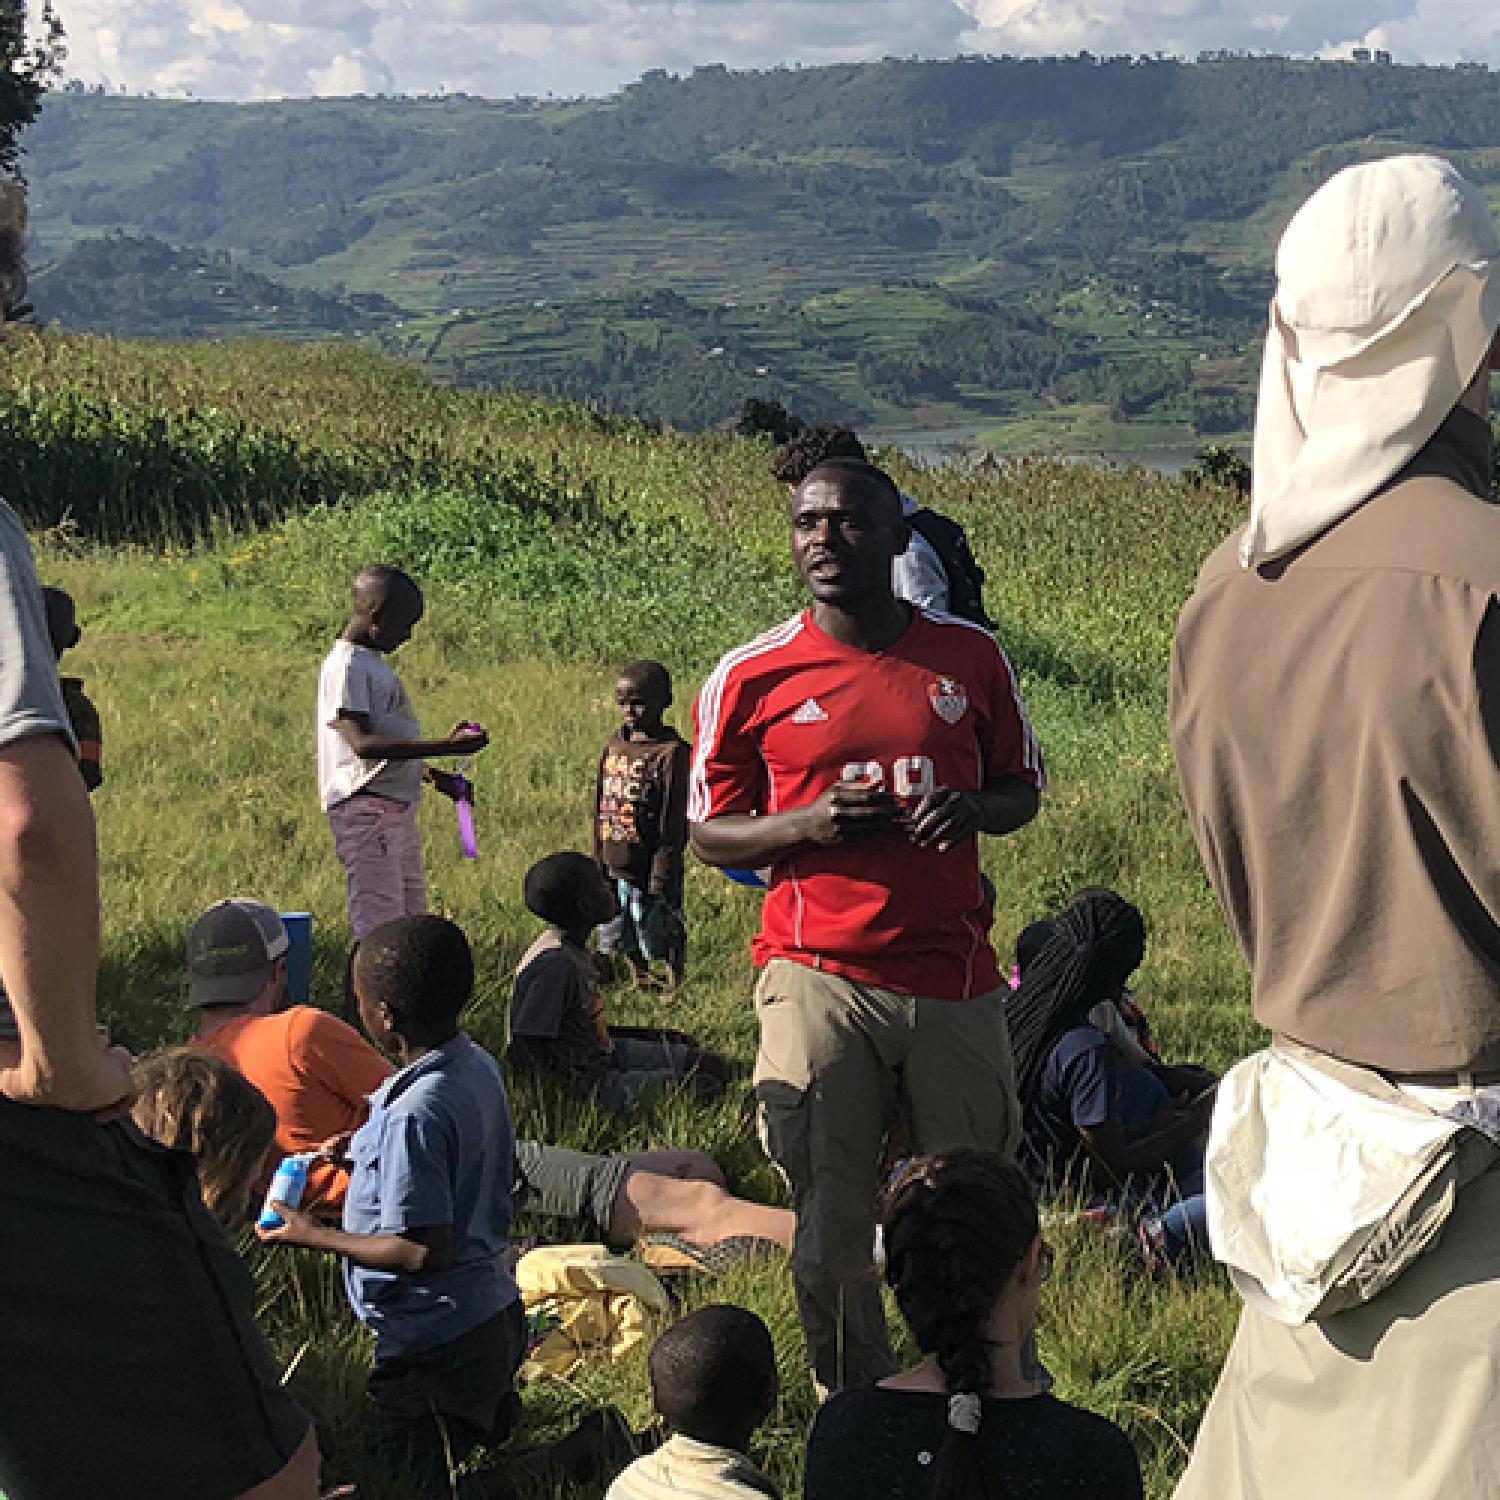 CU Denver students, chancellor spend Maymester in East Africa